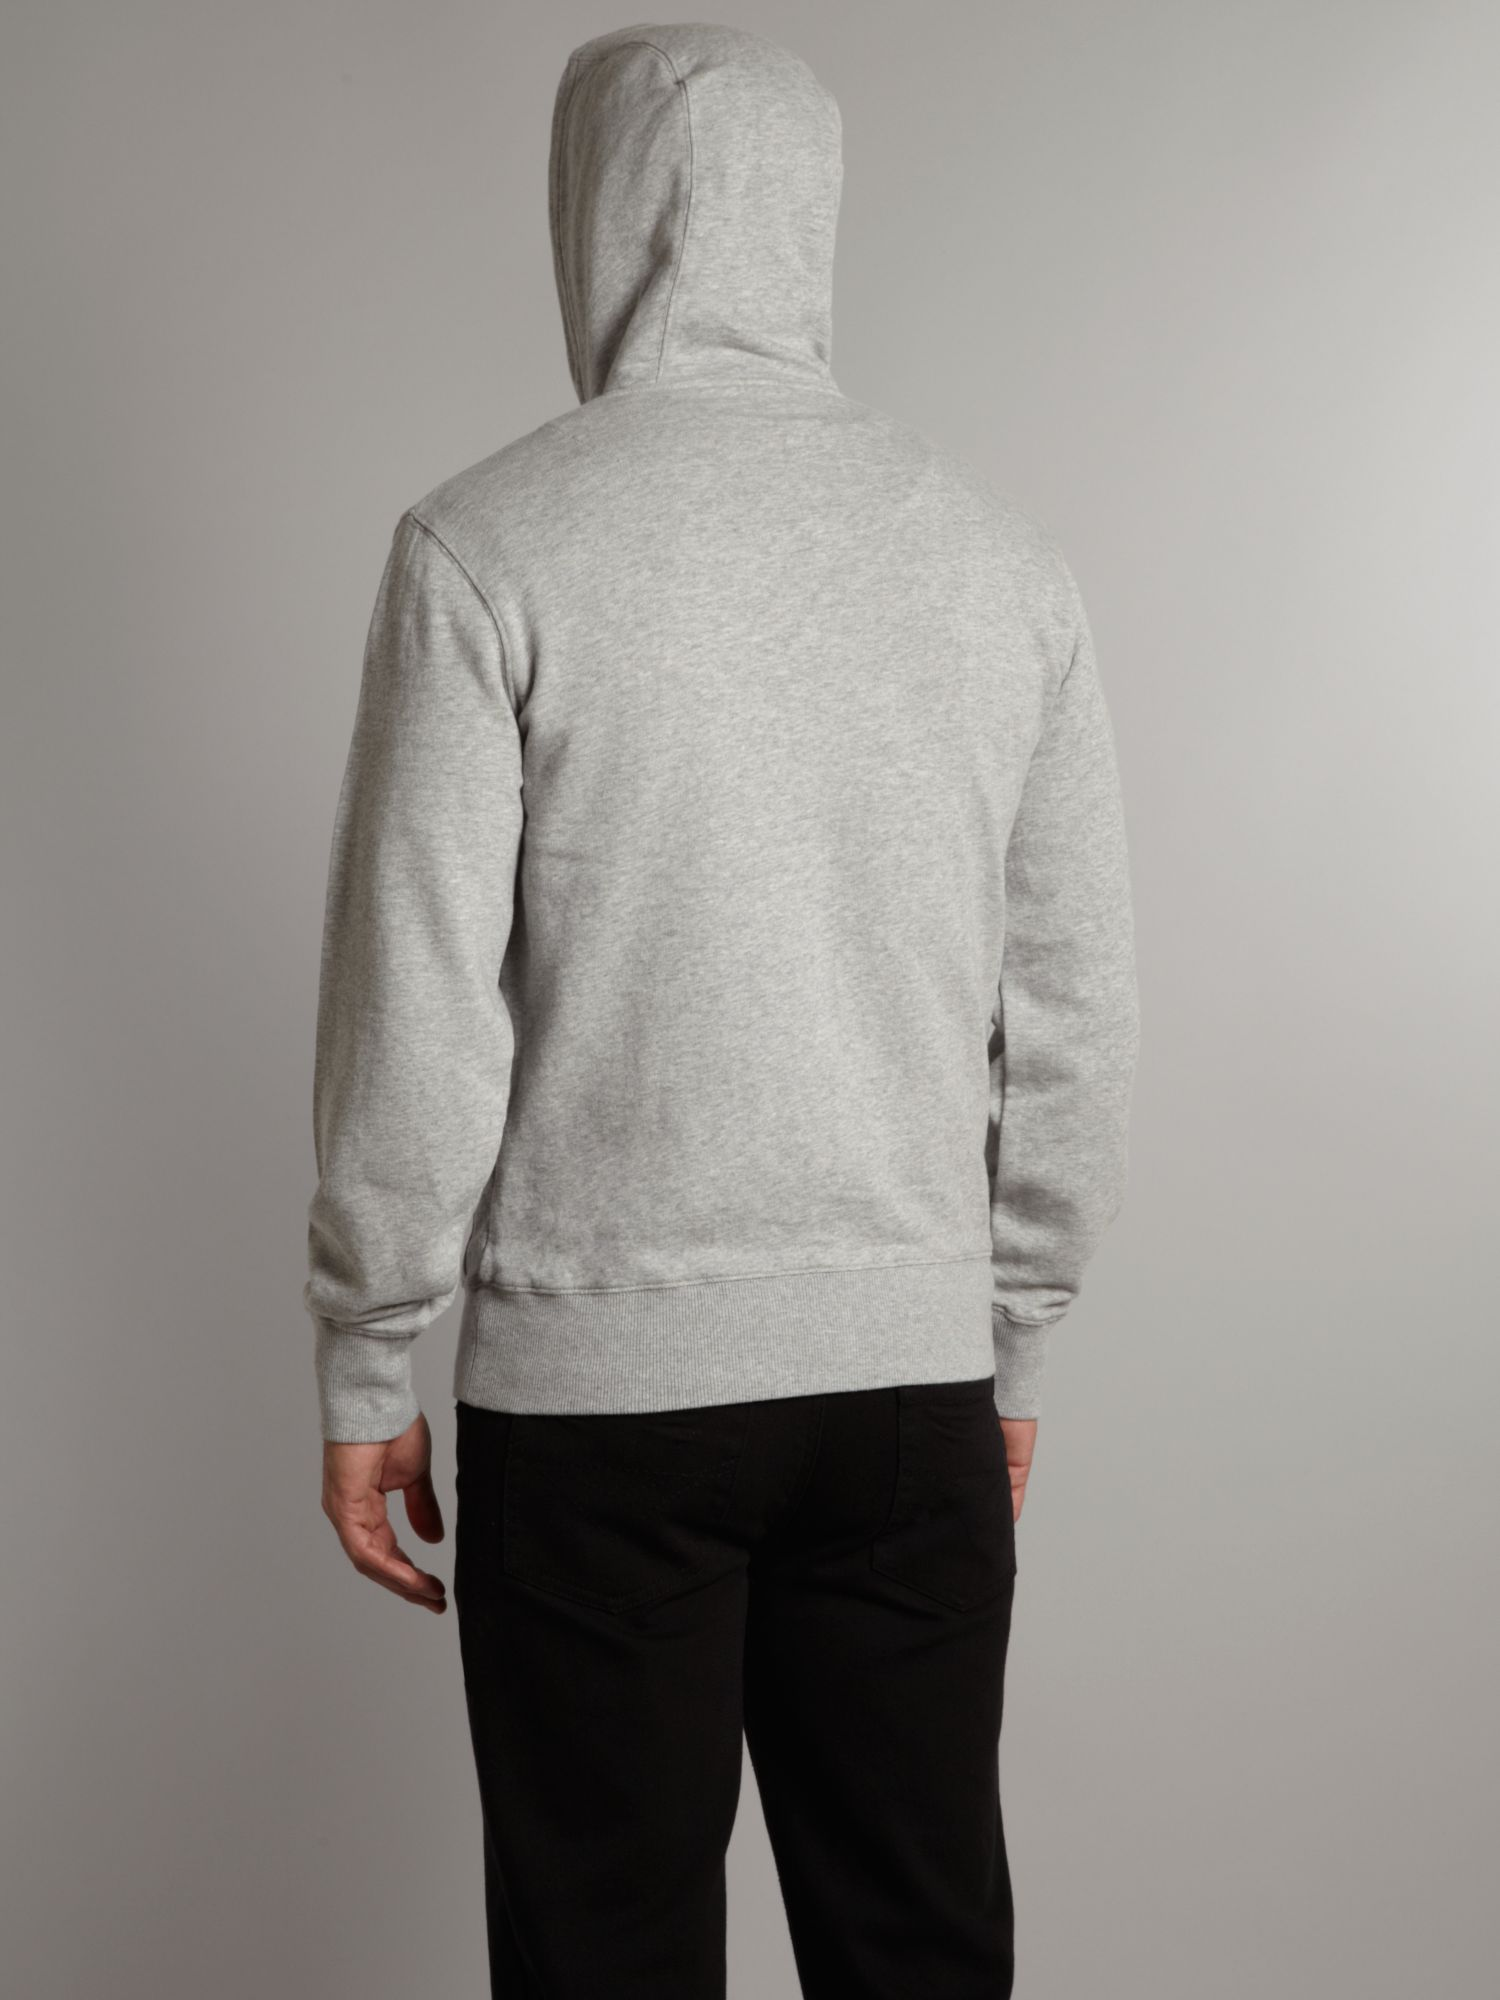 Fred Perry Hooded Zip Through Sweater in Grey Marl (Grey) for Men